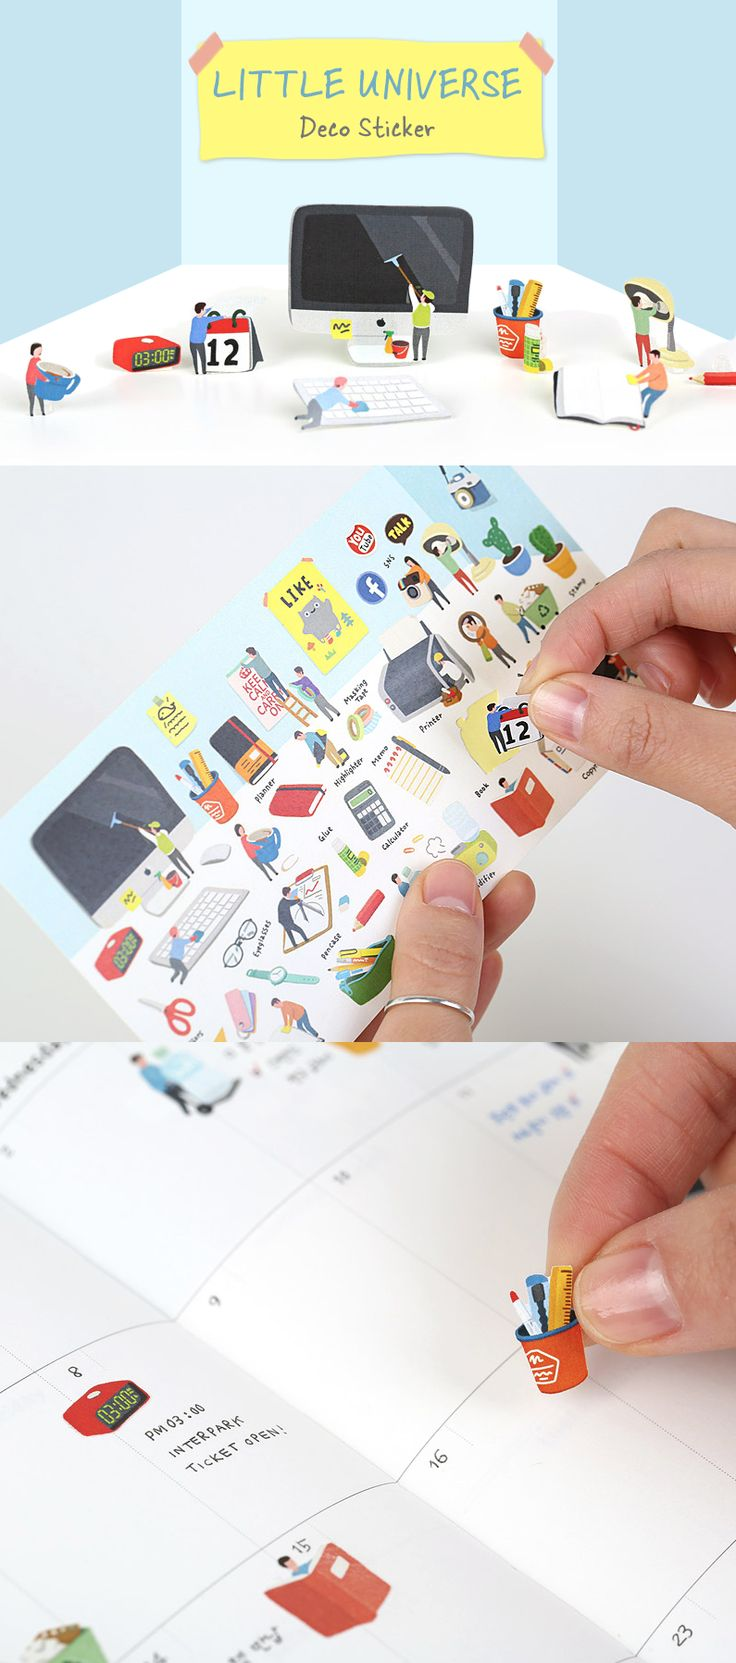 Our daily life is minimized into the adorable stickers! Use these cute stickers to decorate your scheduler, diary, note, letters and so much more!